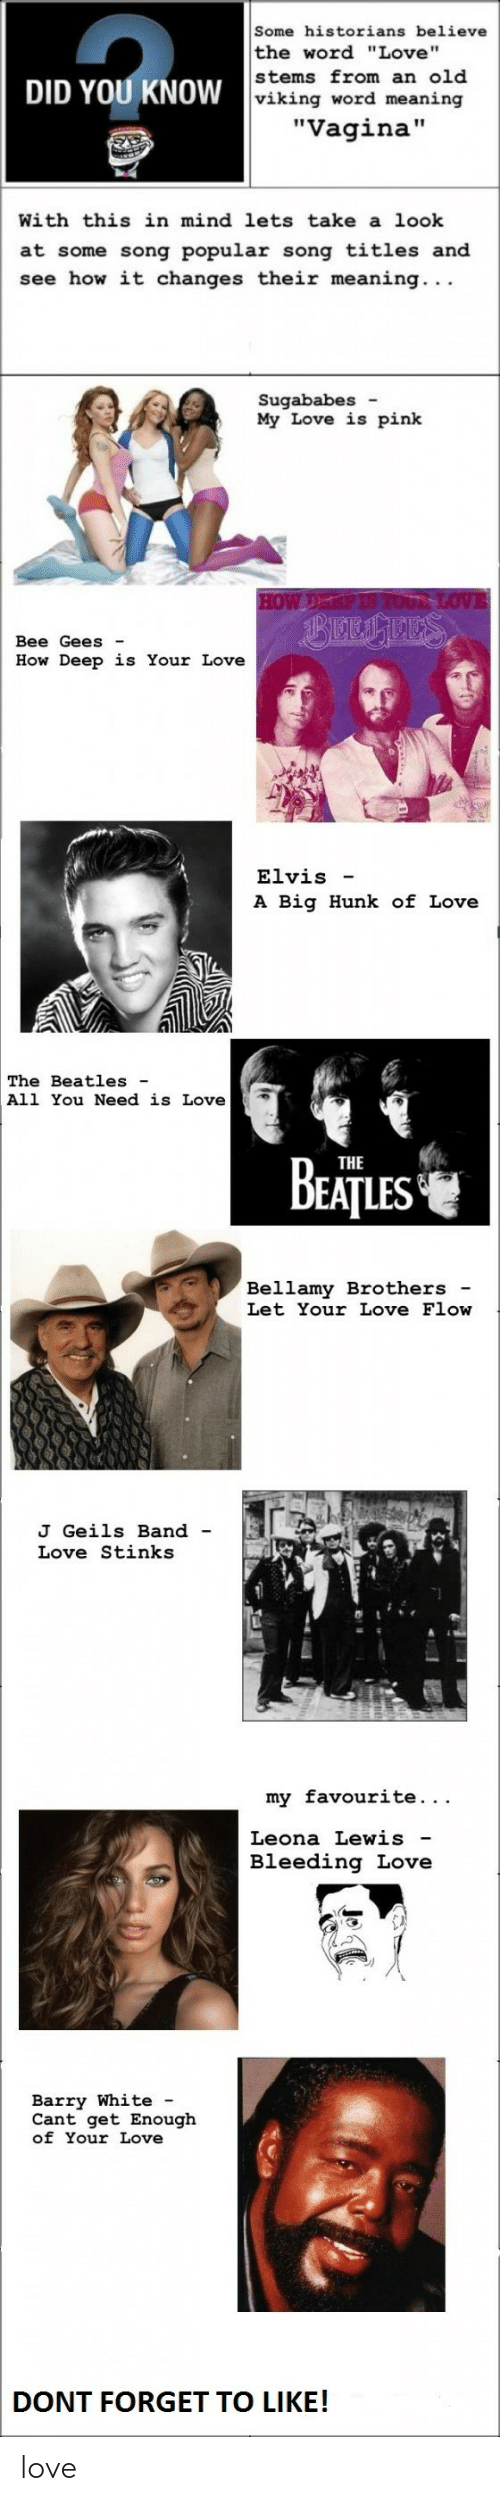 "bee gees: Some historians believe  the word ""Love""  stems from an old  DID YOU KNOW  viking word meaning  ""Vagina""  With this in mind lets take a look  at some song popular song titles and  see how it changes their meaning. ..  Sugababes -  My Love is pink  HOW DEYGP I70UR LOVE  Bee Gees  How Deep is Your Love  Elvis  A Big Hunk of Love  The Beatles  All You Need is Love  BEATUES  THE  Bellamy Bro thers  Let Your Love Flow  J Geils Band  Love Stinks  my favourite...  Leona Lewis  Bleeding Love  Barry White -  Cant get Enough  of Your Love  DONT FORGET TO LIKE! love"